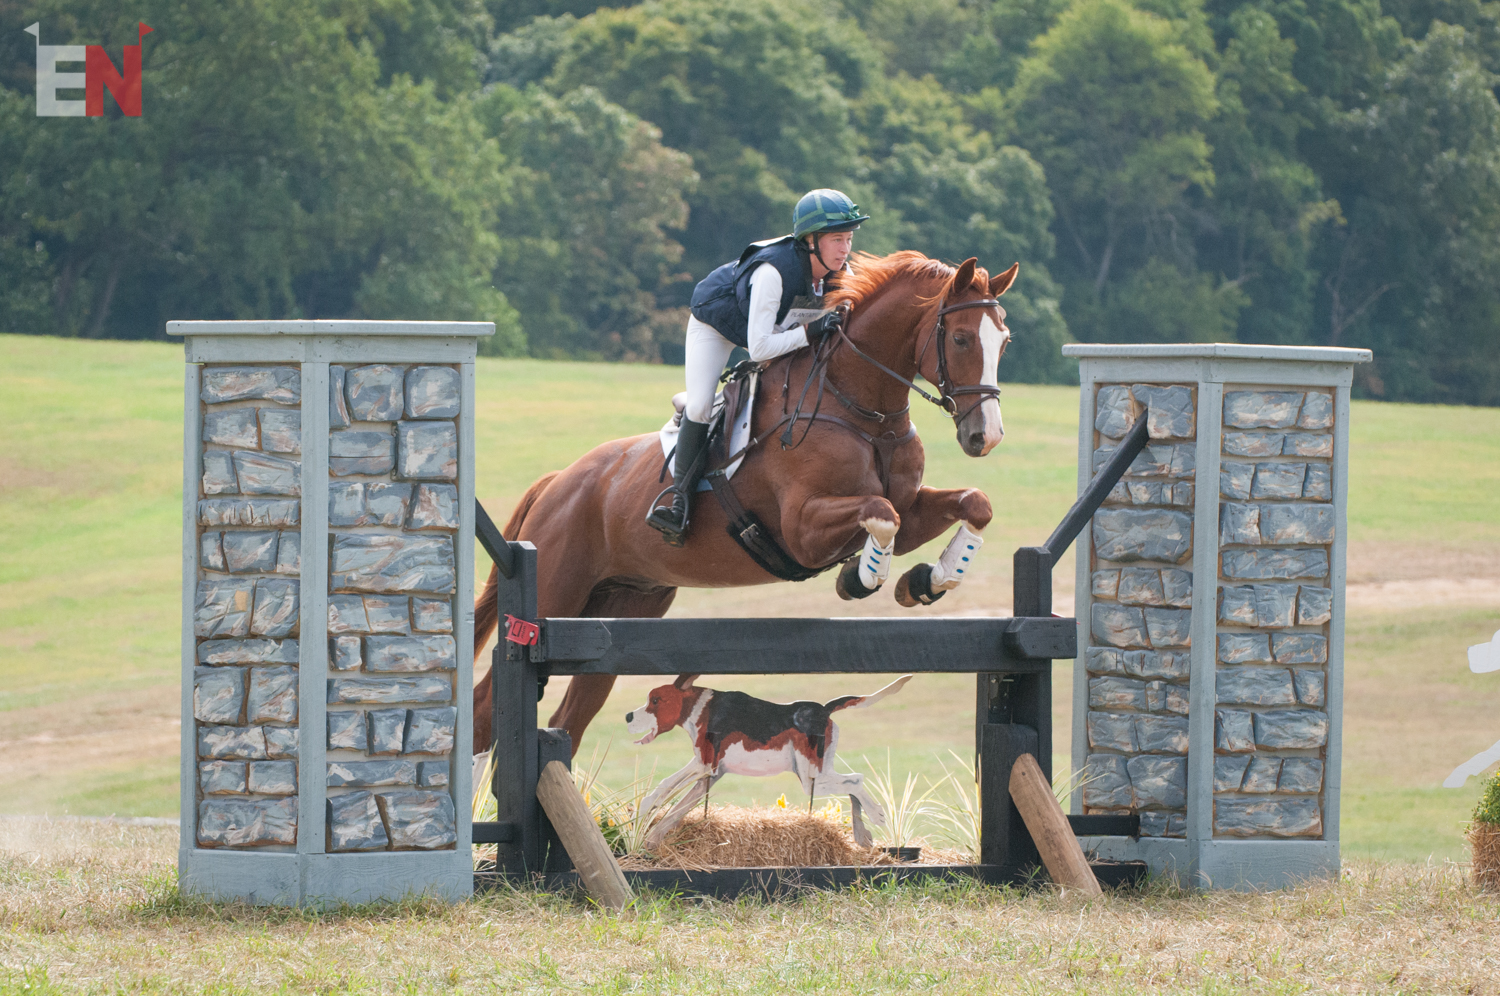 Omtyckta Talent Spotted! Meet Cornelia Dorr of the 2017 USEF Eventing 25 HD-63